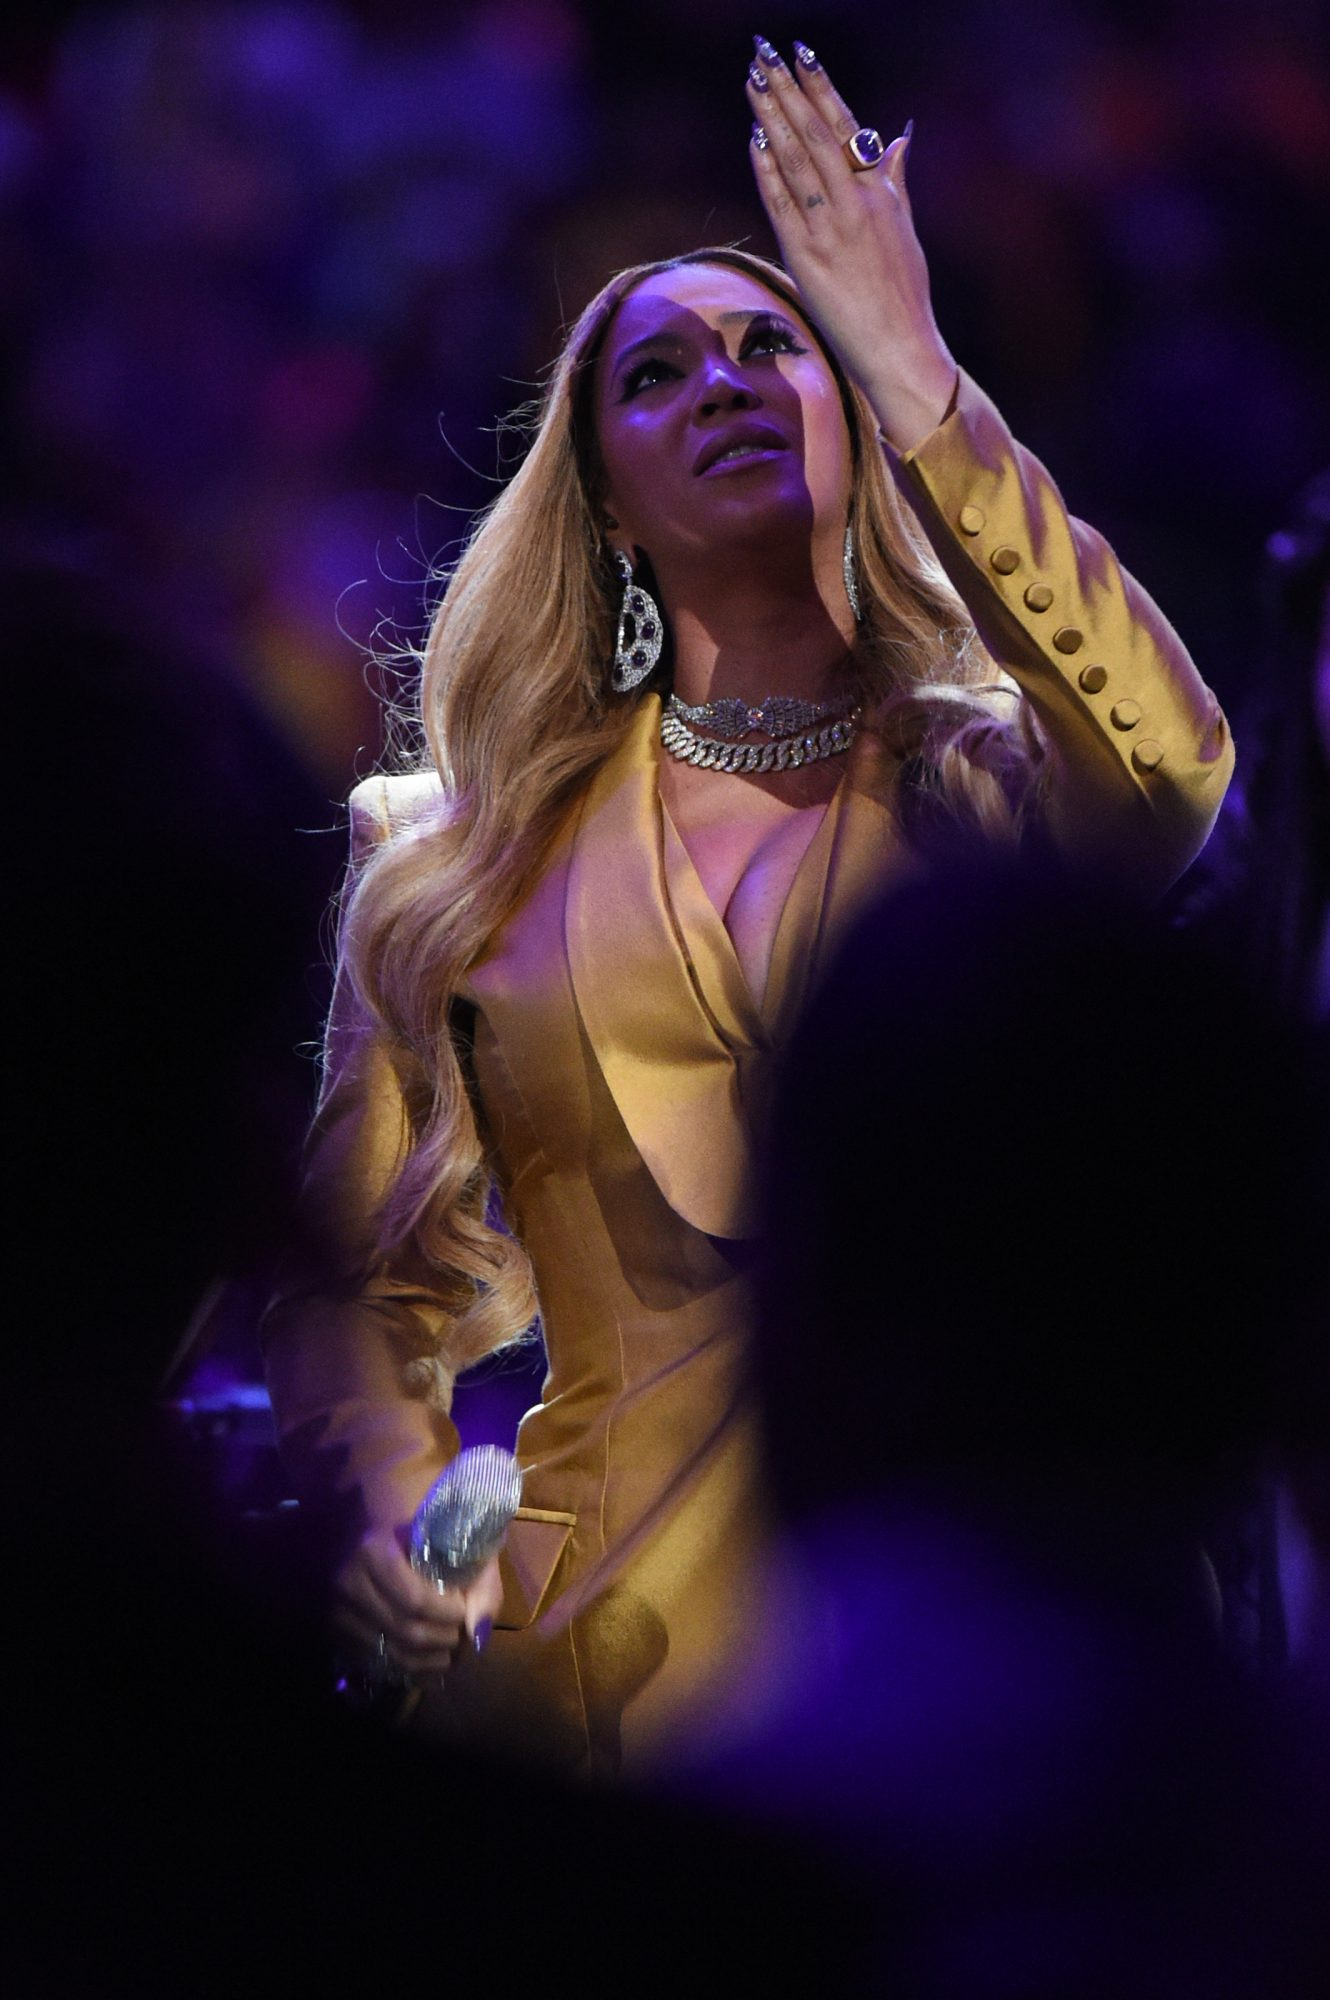 Beyonce performs during the Kobe Bryant Memorial Service on February 24, 2020 at STAPLES Center in Los Angeles, California. NOTE TO USER: User expressly acknowledges and agrees that, by downloading and/or using this Photograph, user is consenting to the terms and conditions of the Getty Images License Agreement. Mandatory